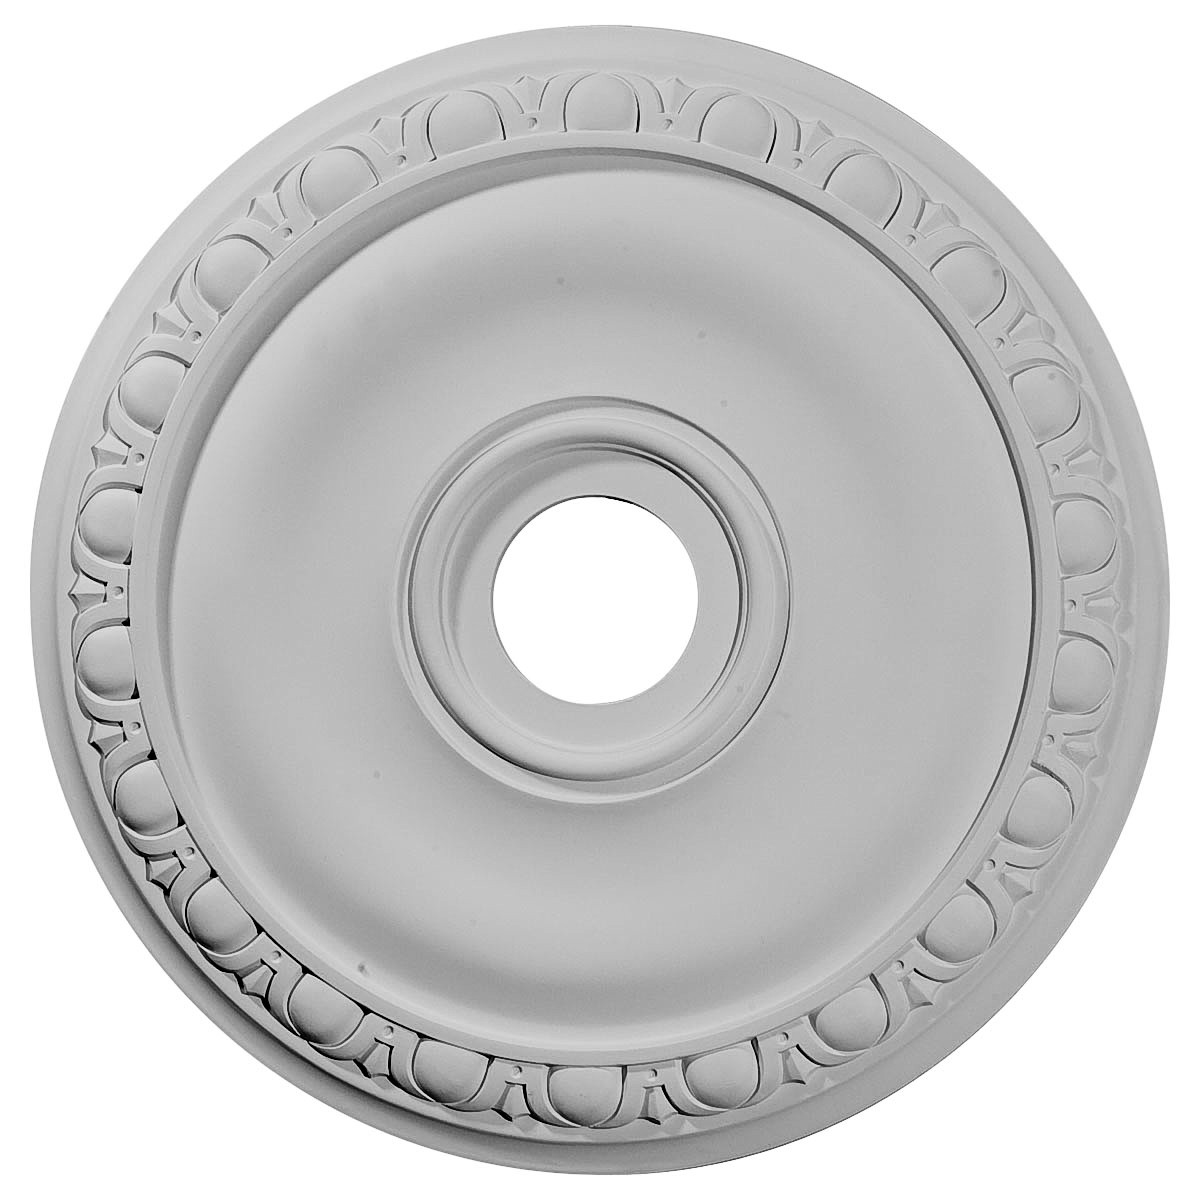 "EM-CM20JA - 20""OD x 3 5/8""ID x 1""P Jackson Ceiling Medallion (Fits Canopies up to 5 1/8"")"